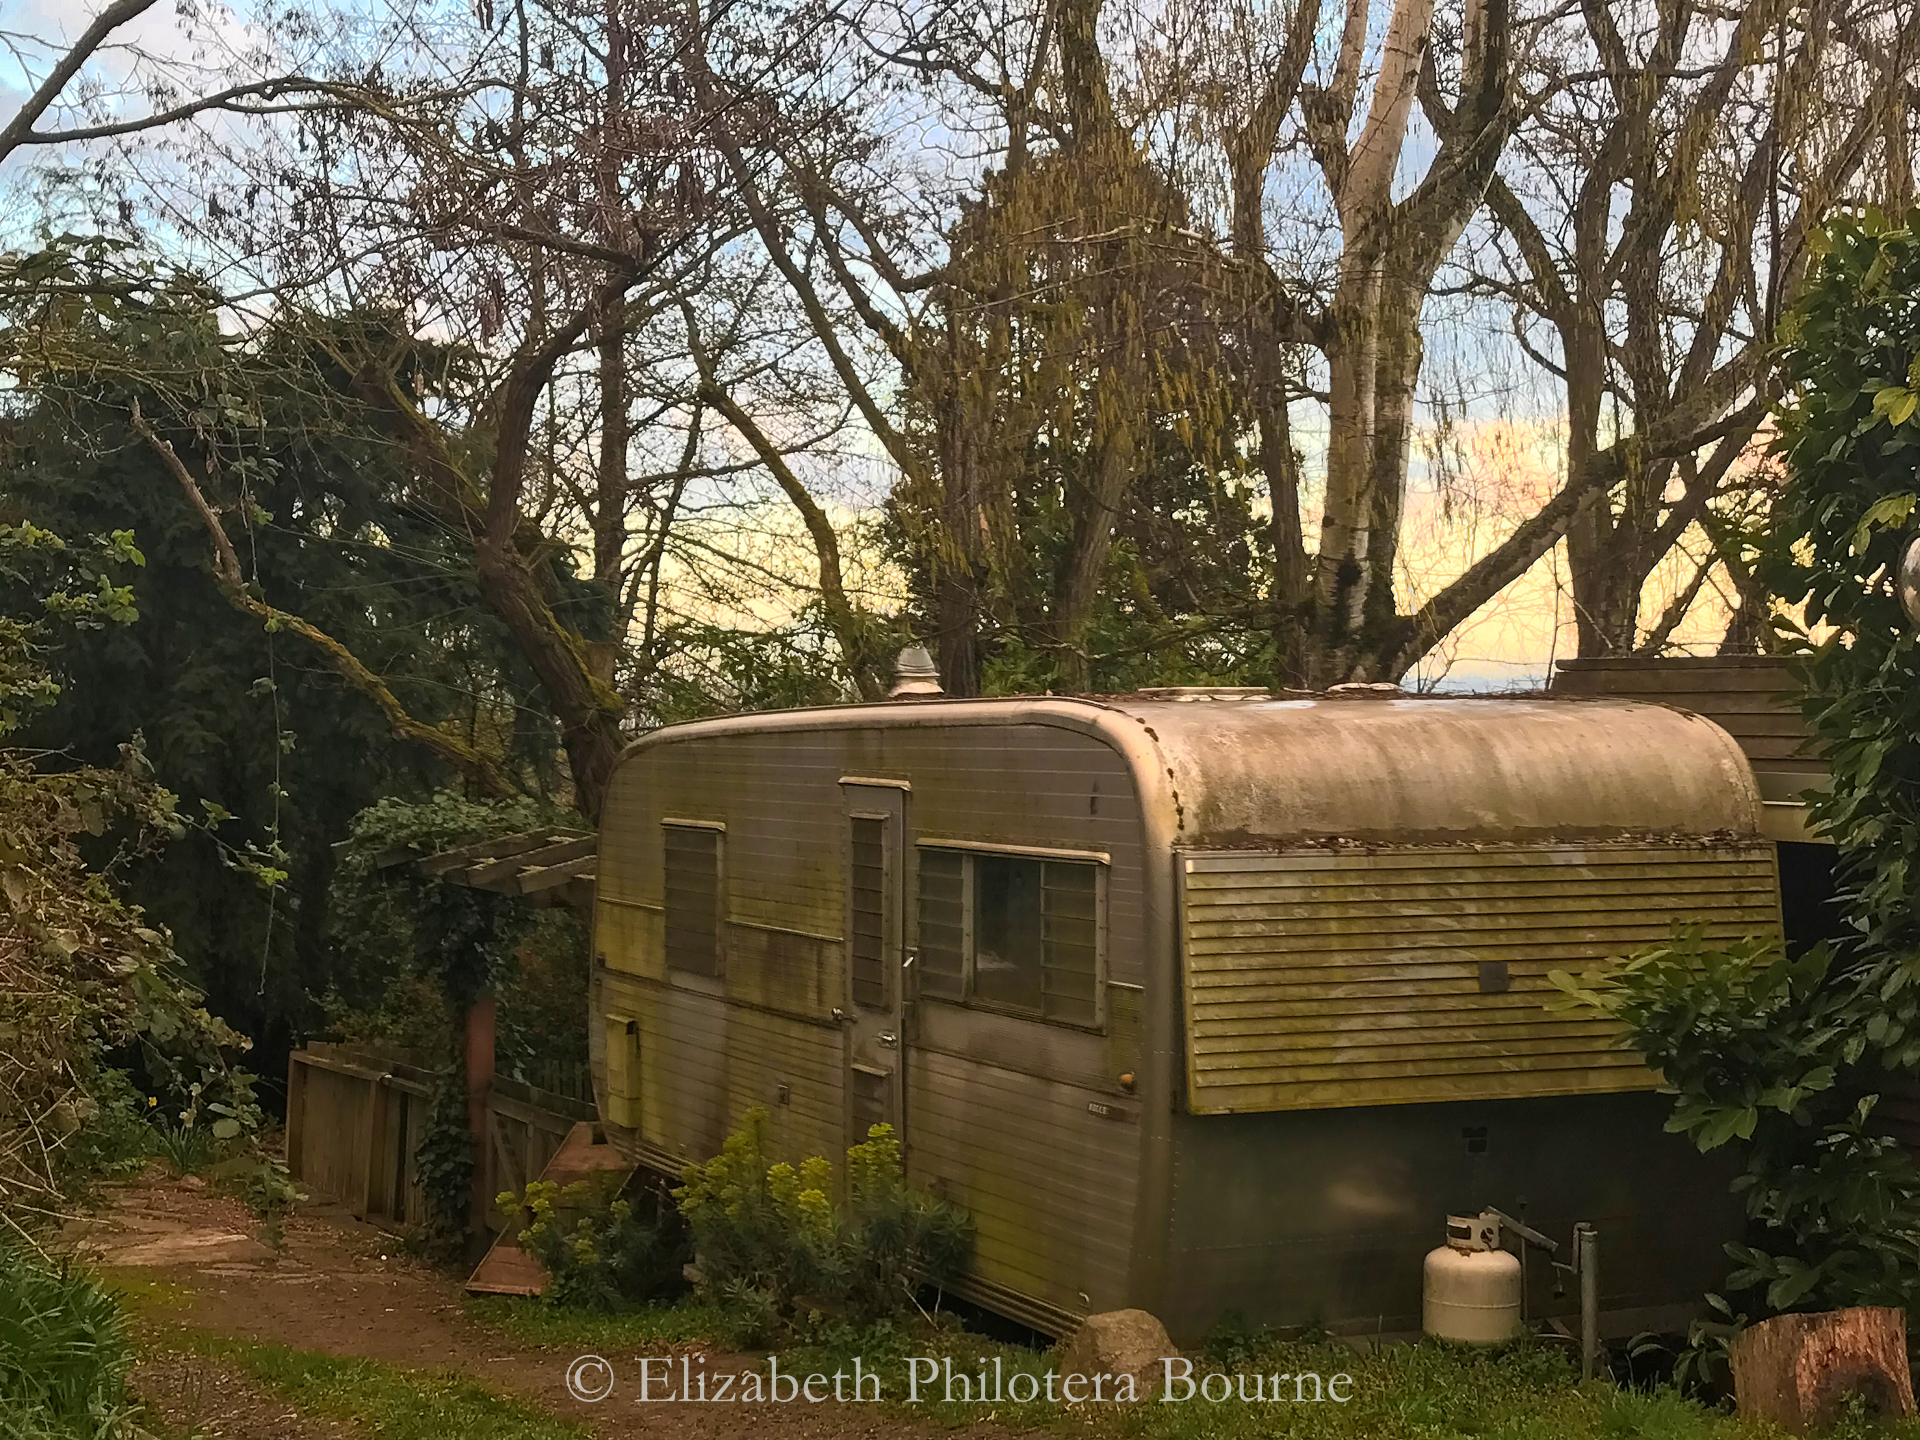 landscape of old RV in grove of trees with sunset